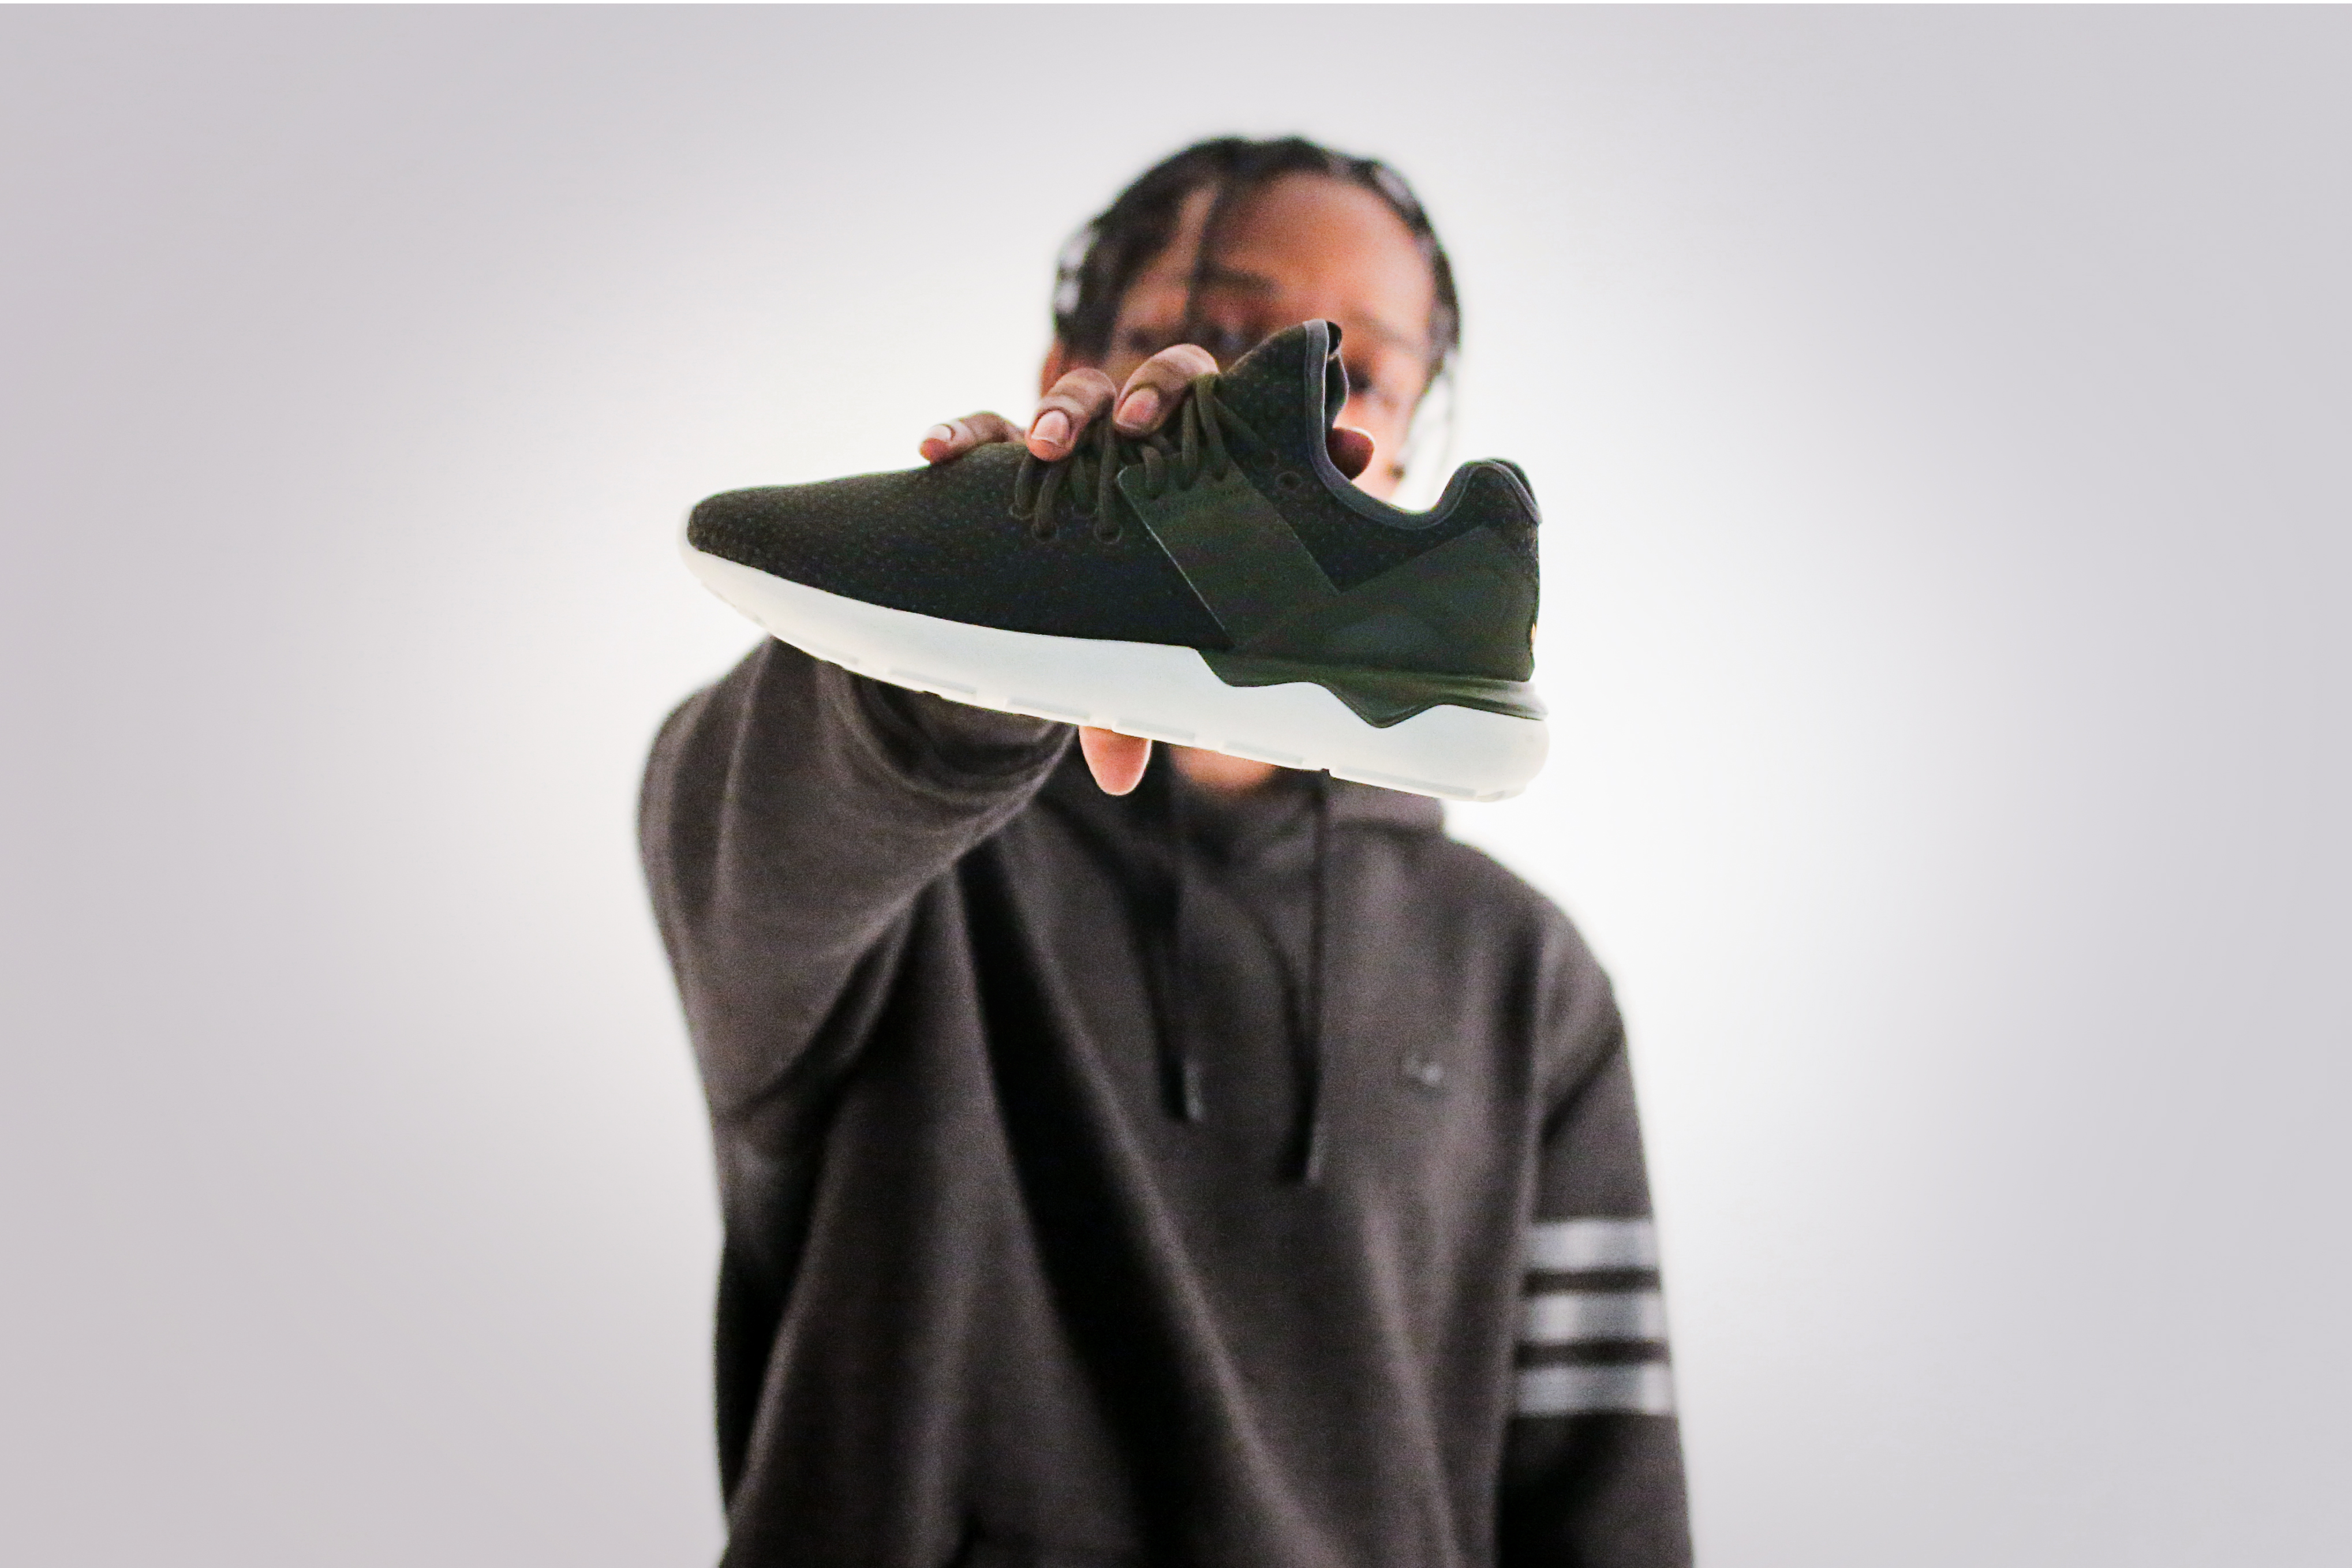 Der neue adidas Originals Tubular Runner S in Kooperation mit A$AP Rocky